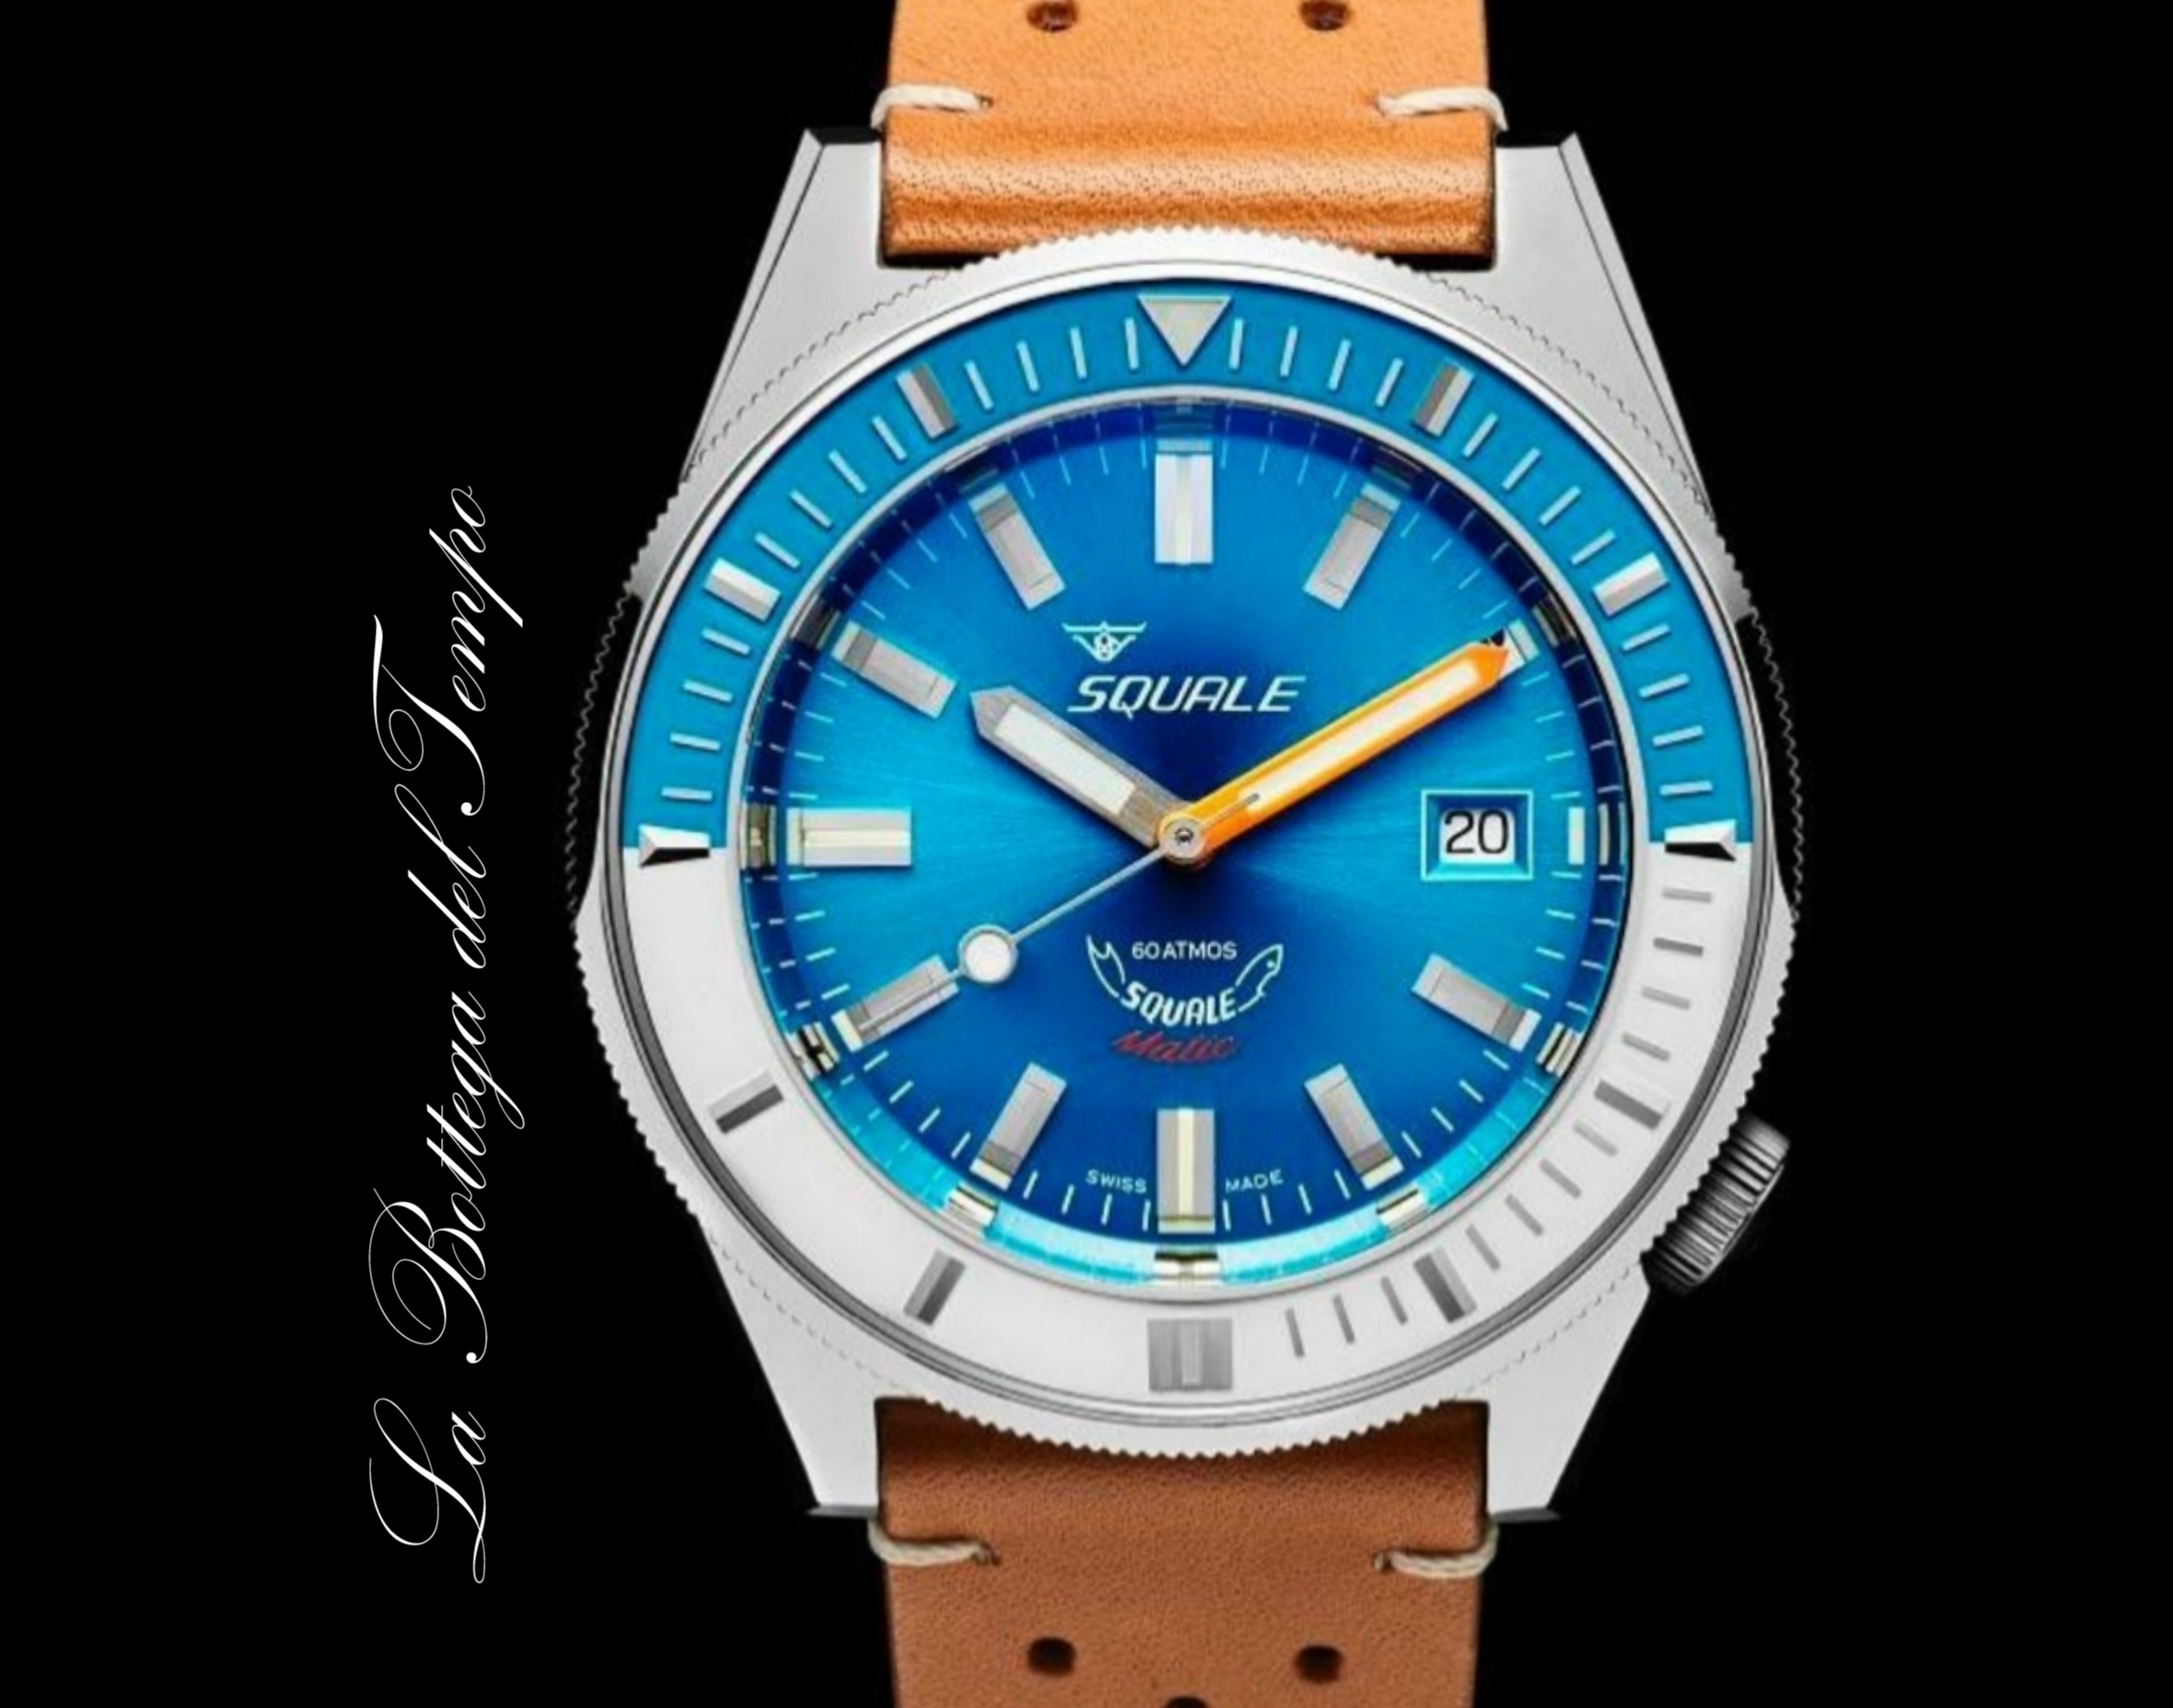 Squale Matic Light Blue 60 ATM